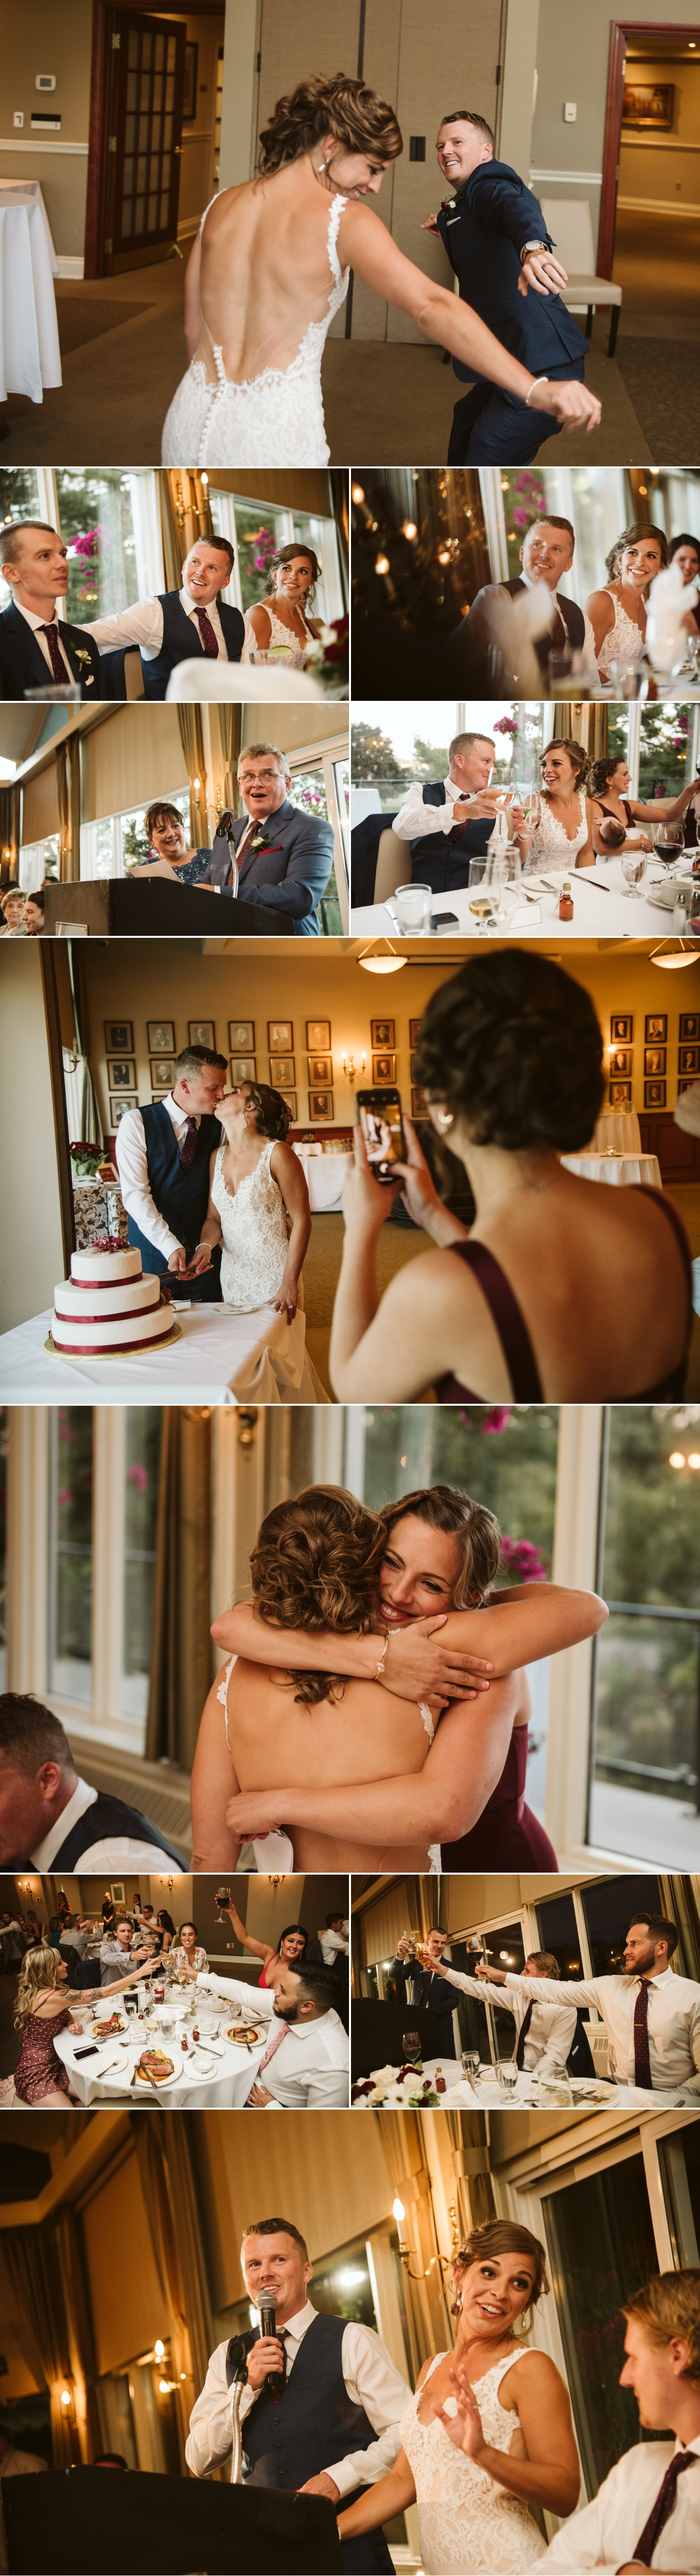 candid moments during a hunt and golf club wedding reception in ottawa ontario